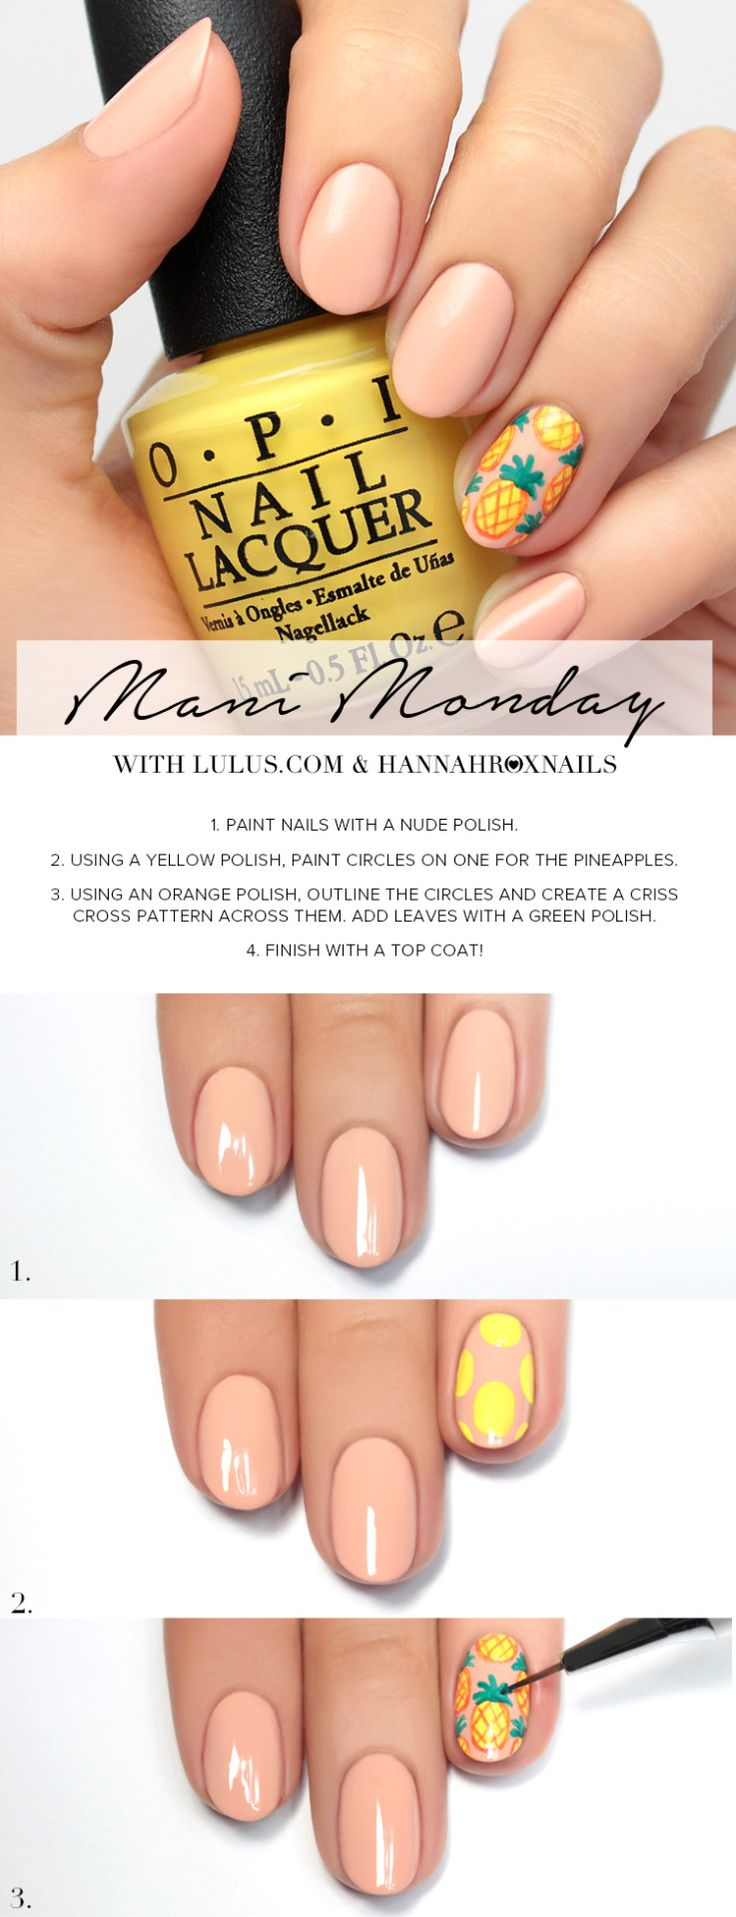 Mani Monday: Nude with Pineapple Accent Nail Tutorial